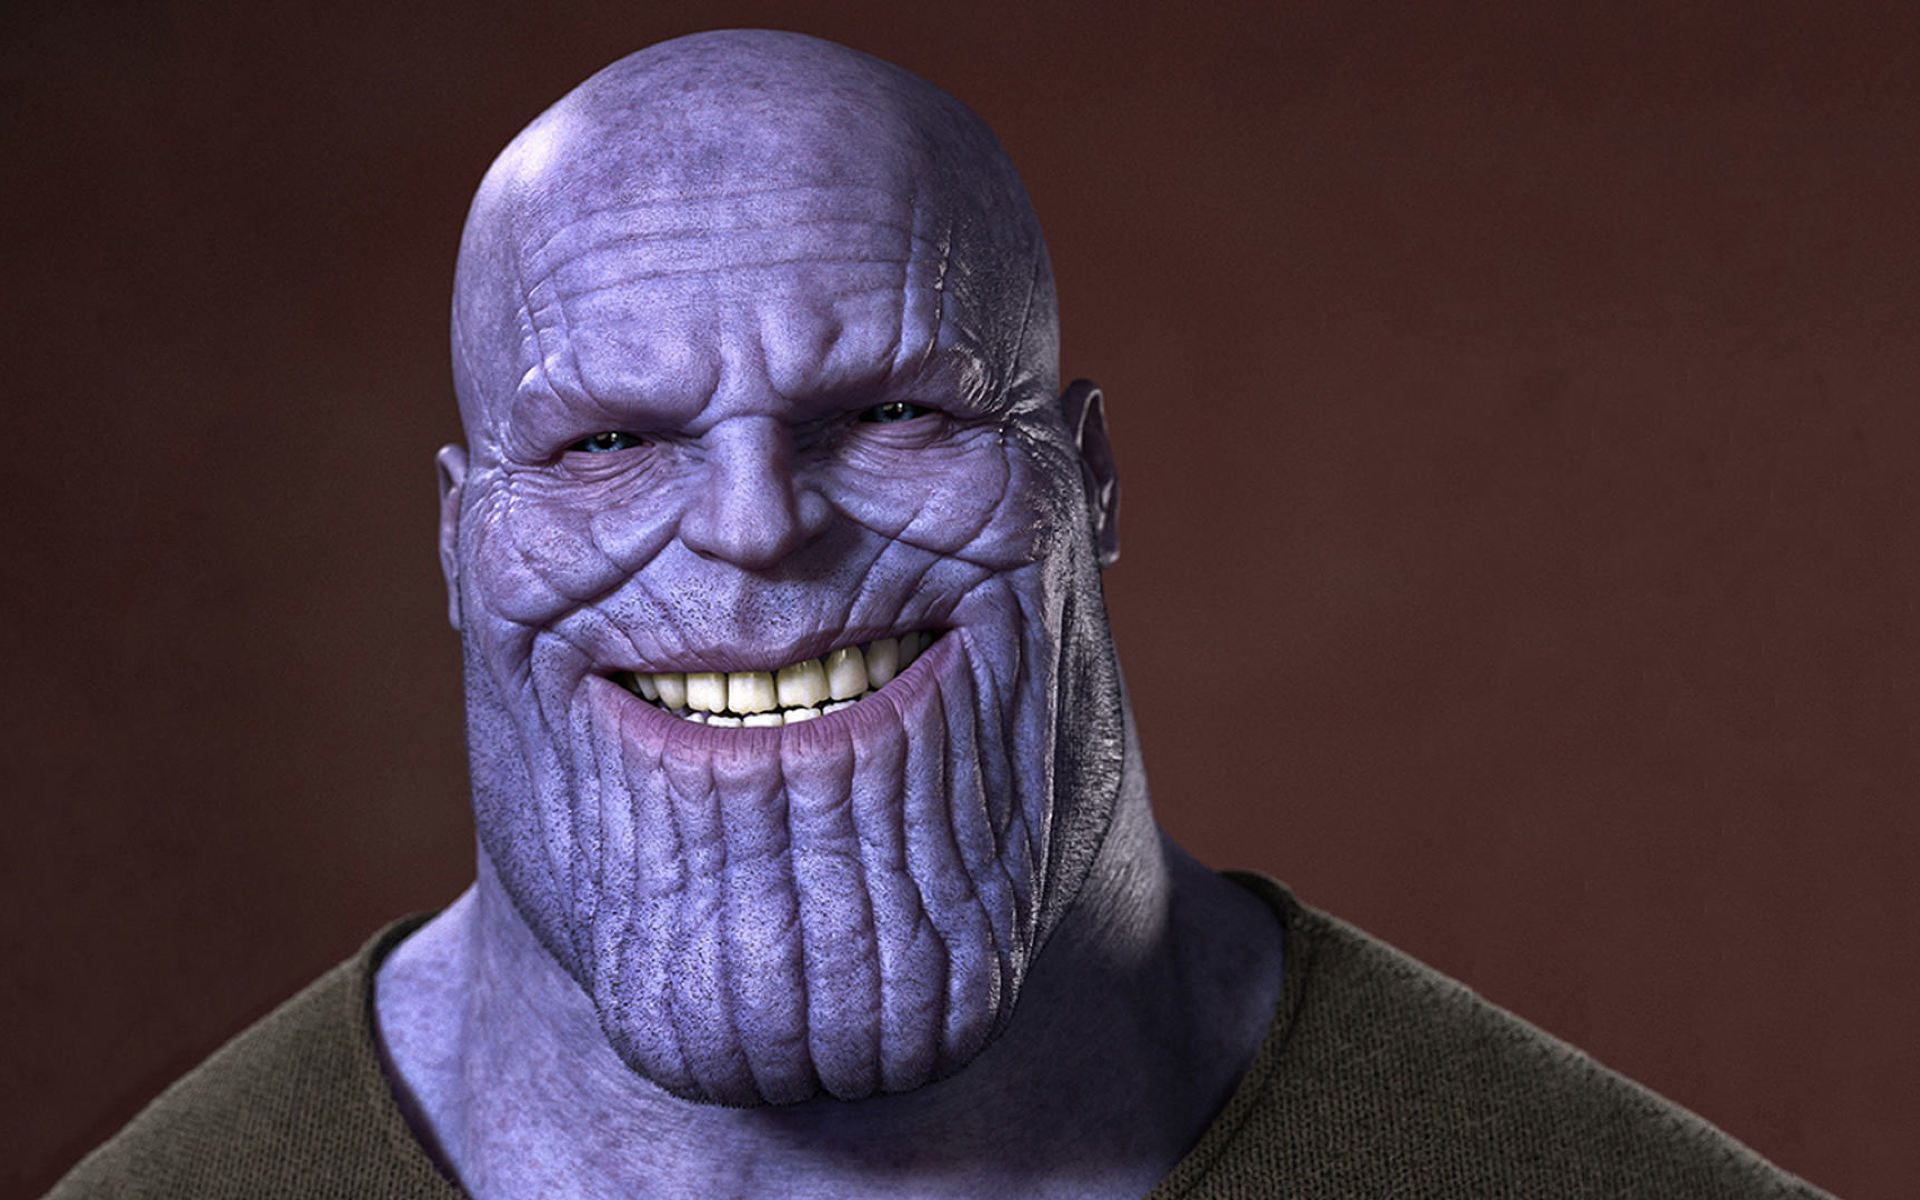 Xperia Wallpaper 1920x1080 Thanos Smiling, Full H...